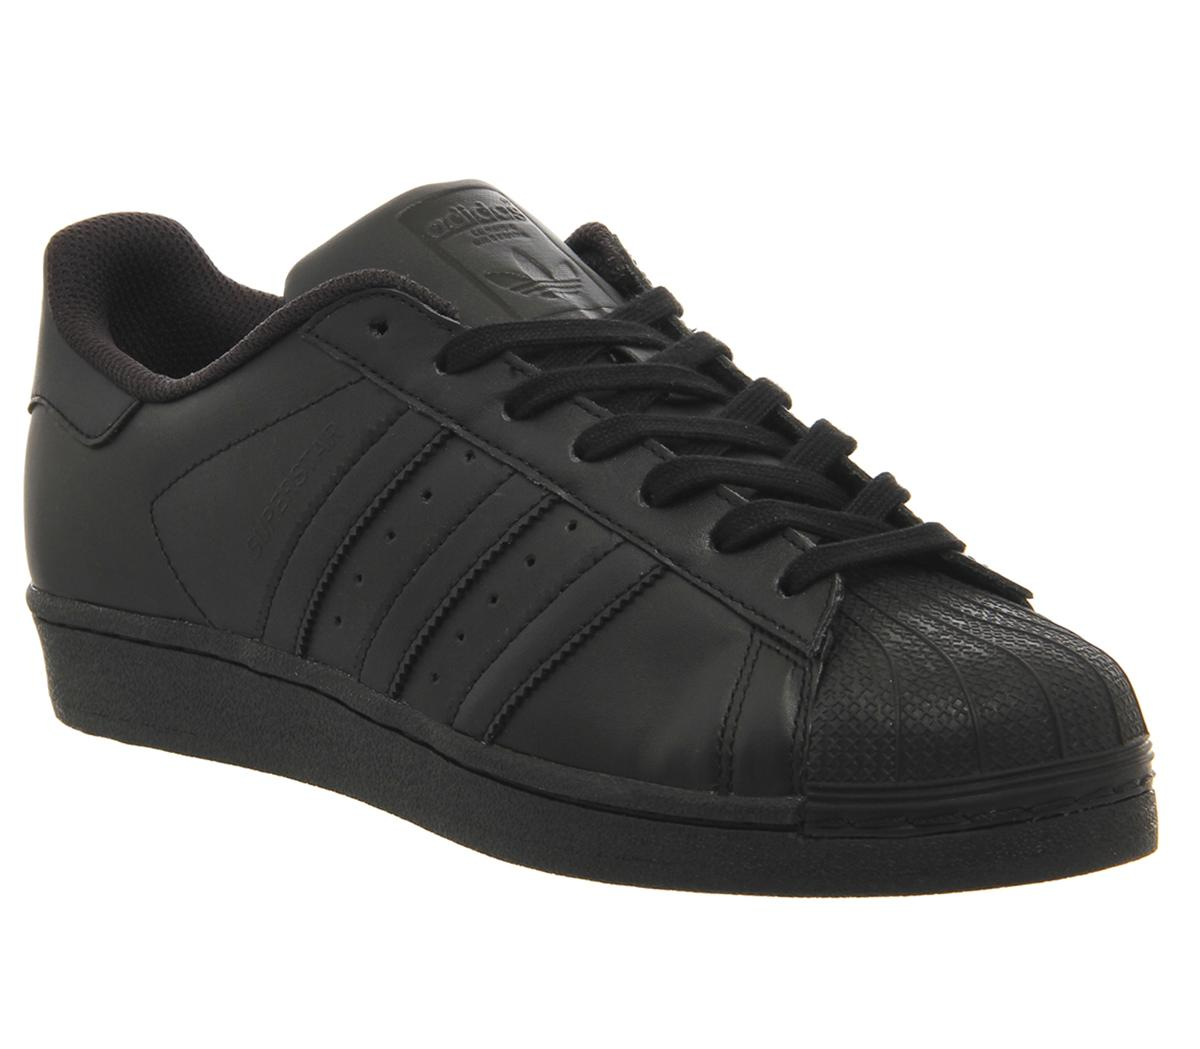 adidas superstar mens uk